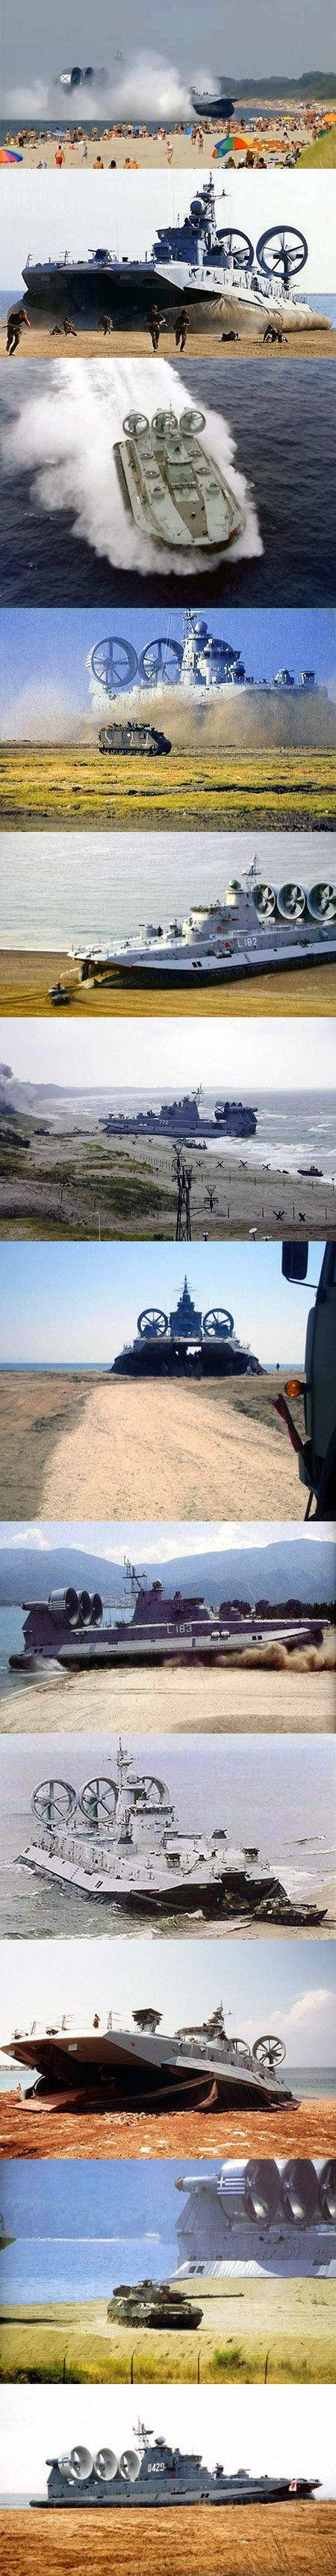 The Zubr-class is a class of air-cushioned landing craft of Soviet design. This class of military hovercraft is, as of 2012, the world's largest hovercraft. It is designed to sealift landing assault units (such as marines or tanks) from equipped/non-equipped vessels to non-equipped shore, as well as transport and plant mines.